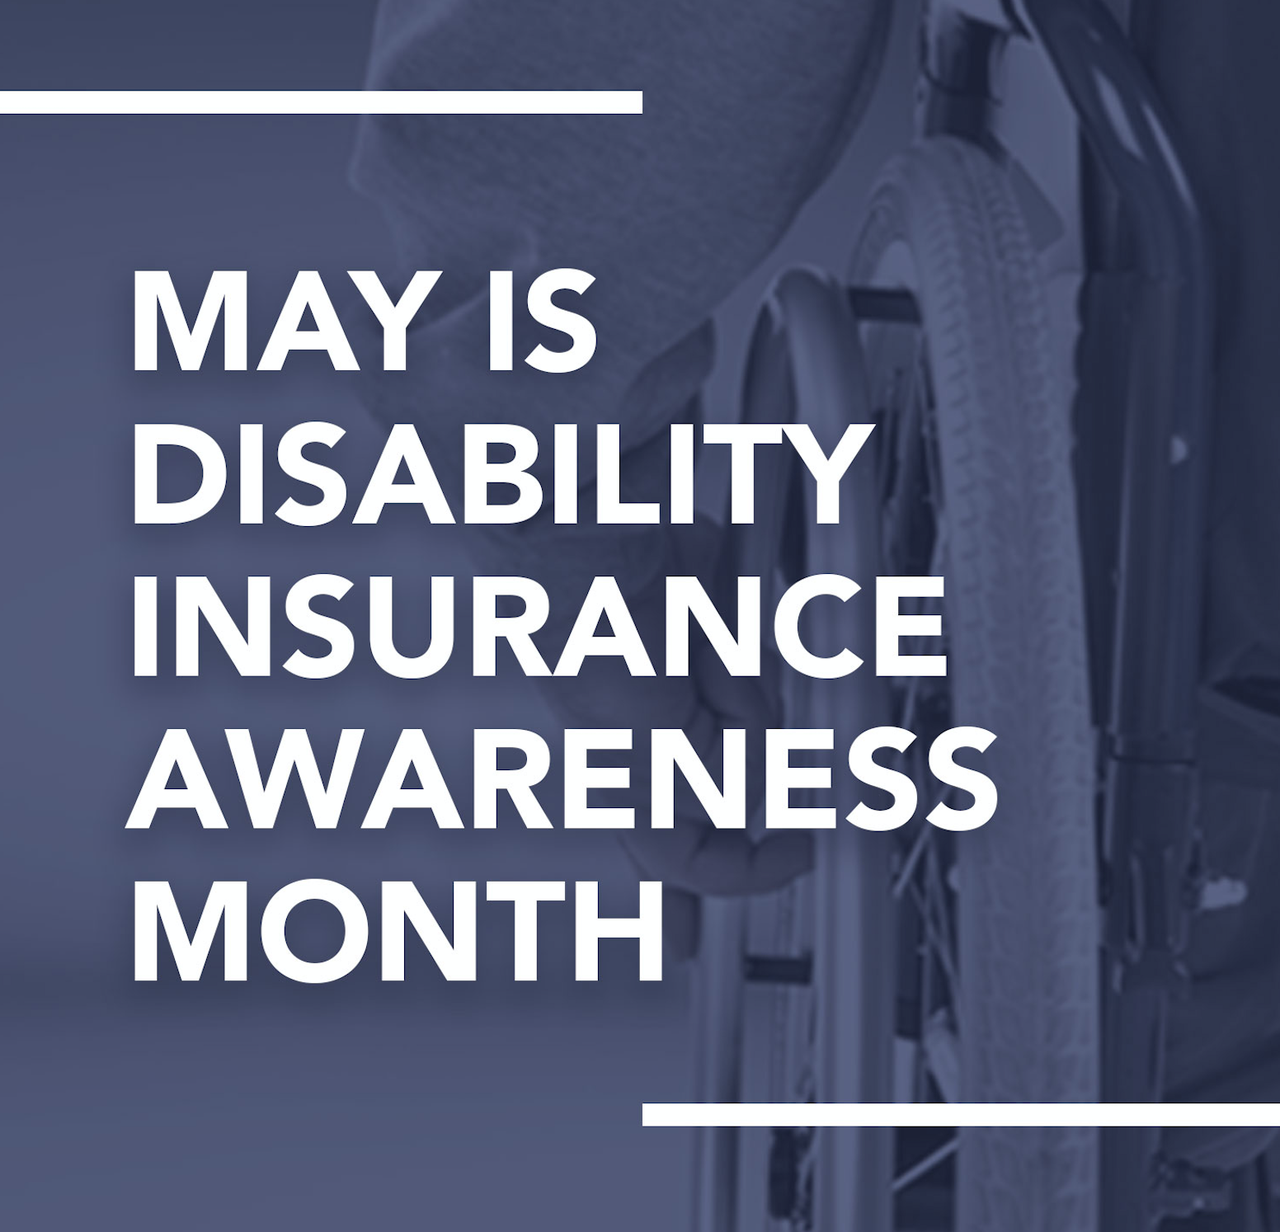 may-is-disability-awareness-month.png